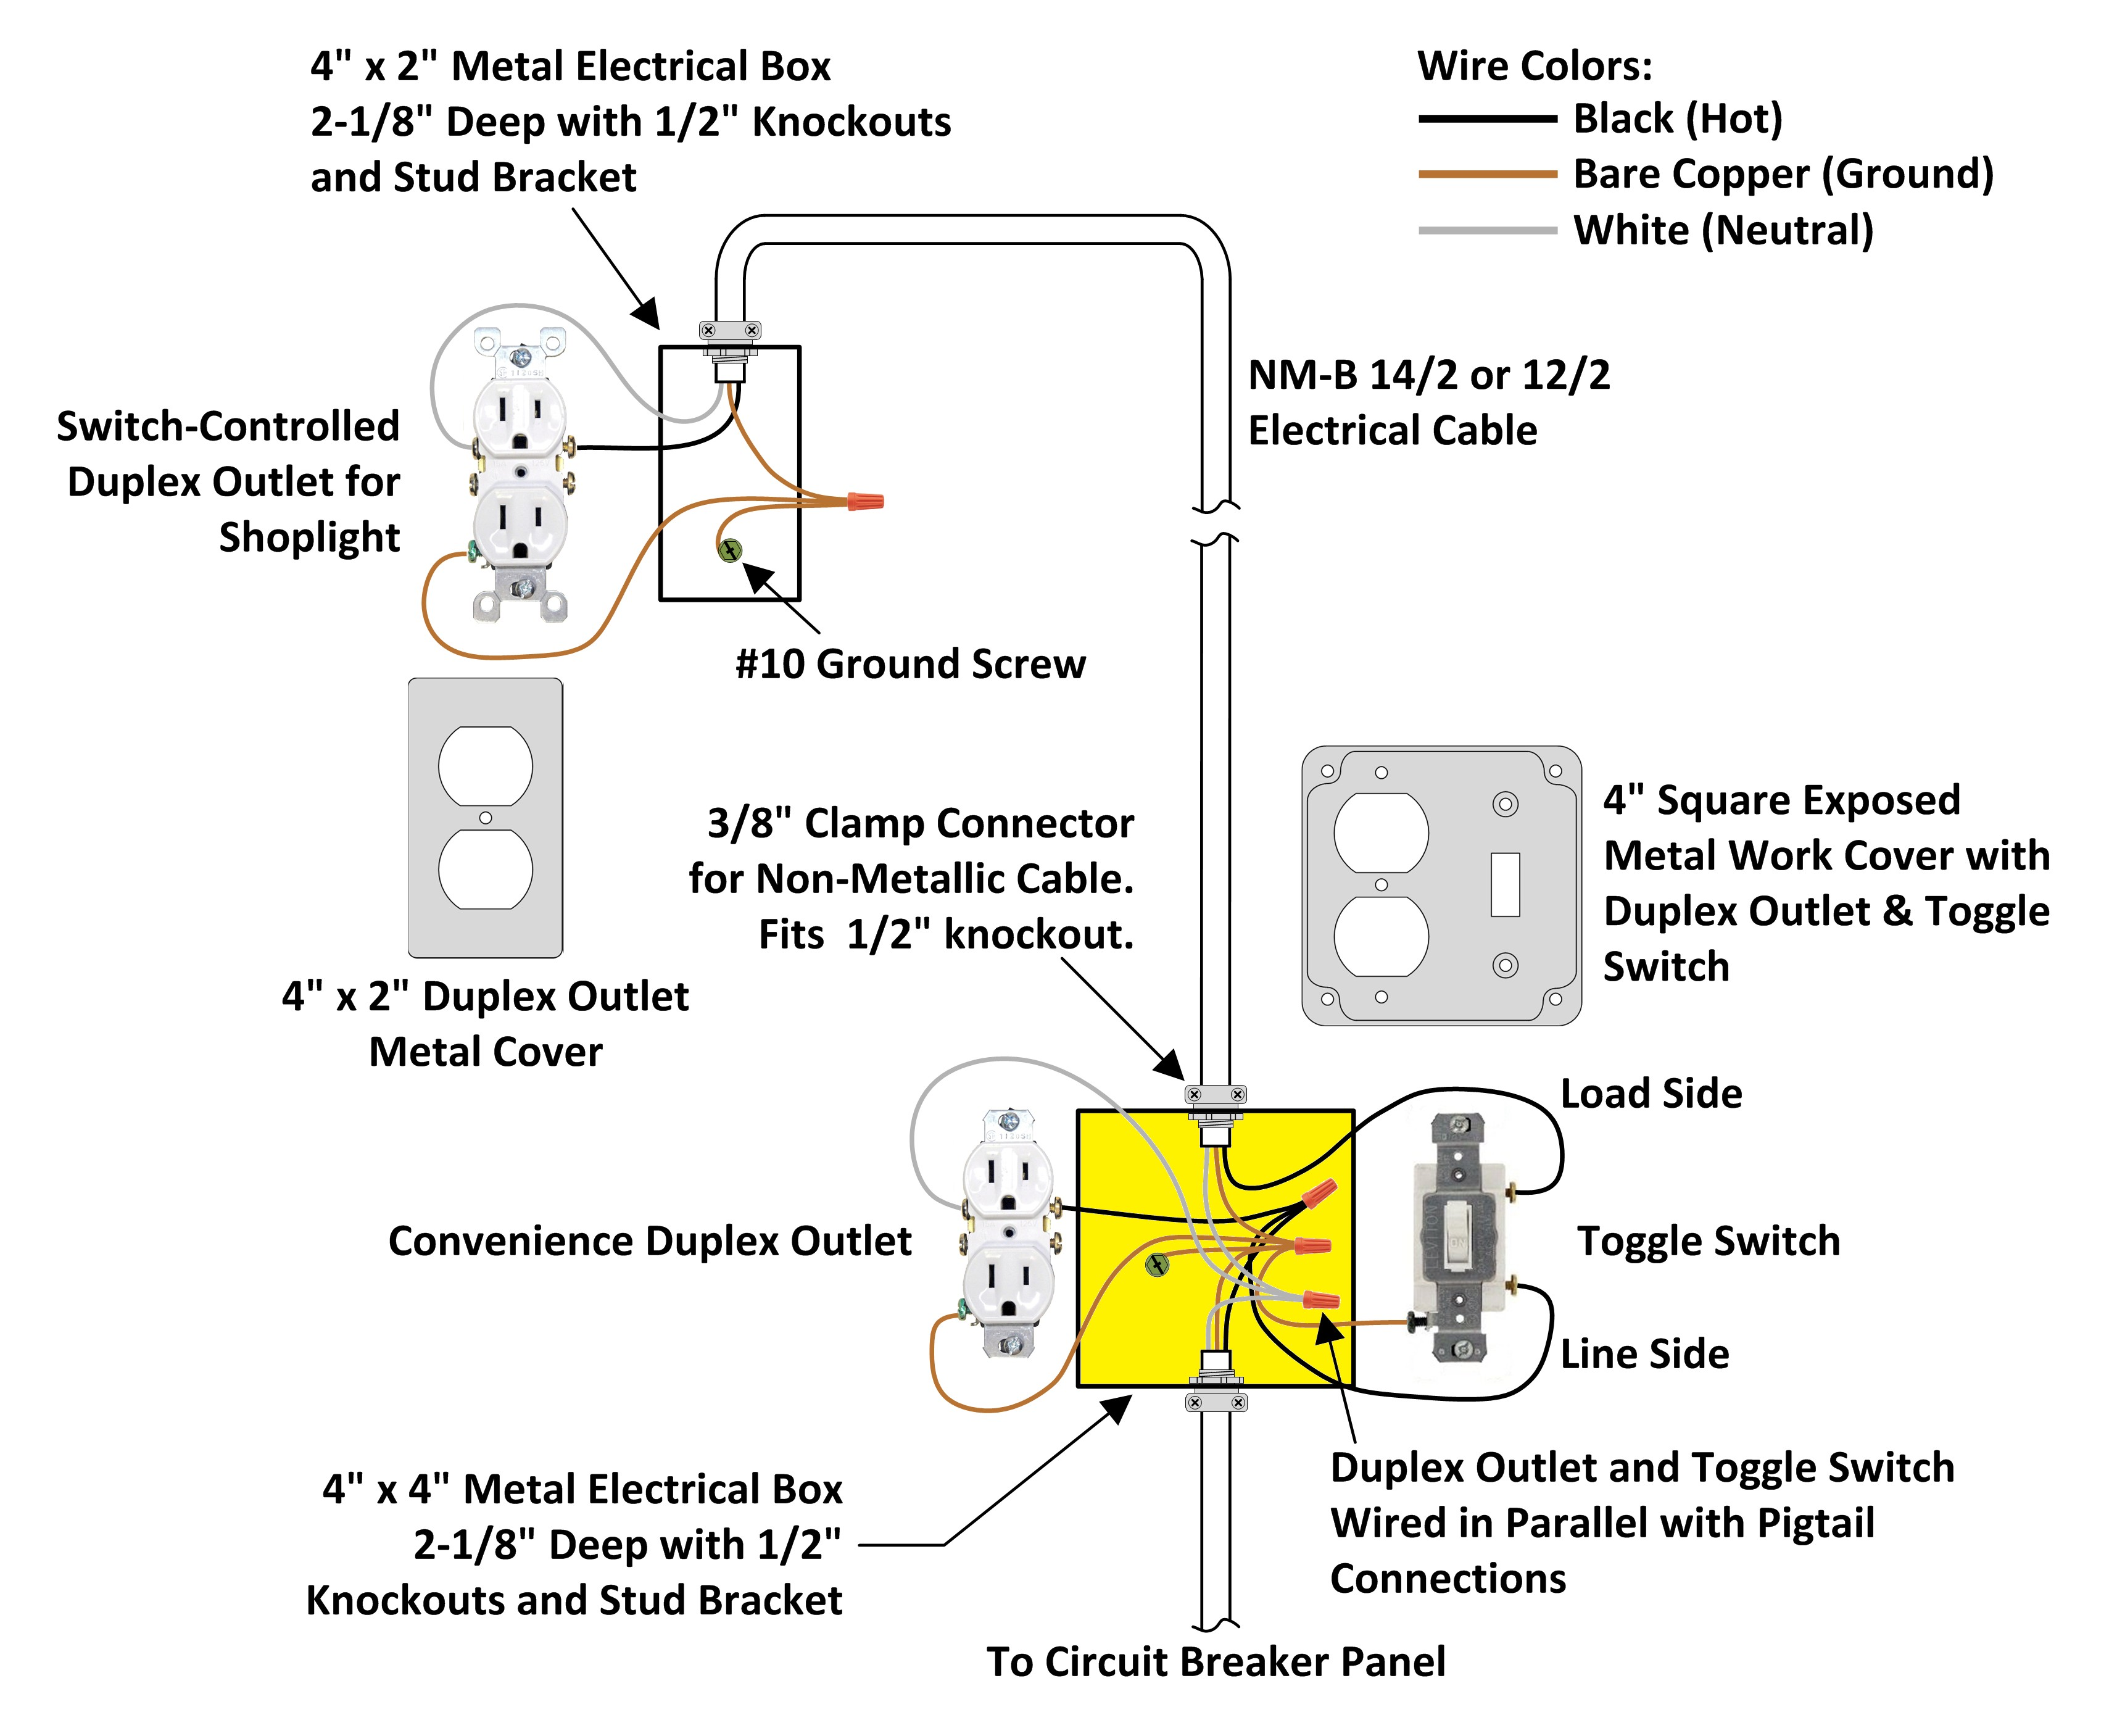 Electrical Light Wiring Diagram With Switch Junction Box And Exposed Work Auto Repair Symbols Physical Layout